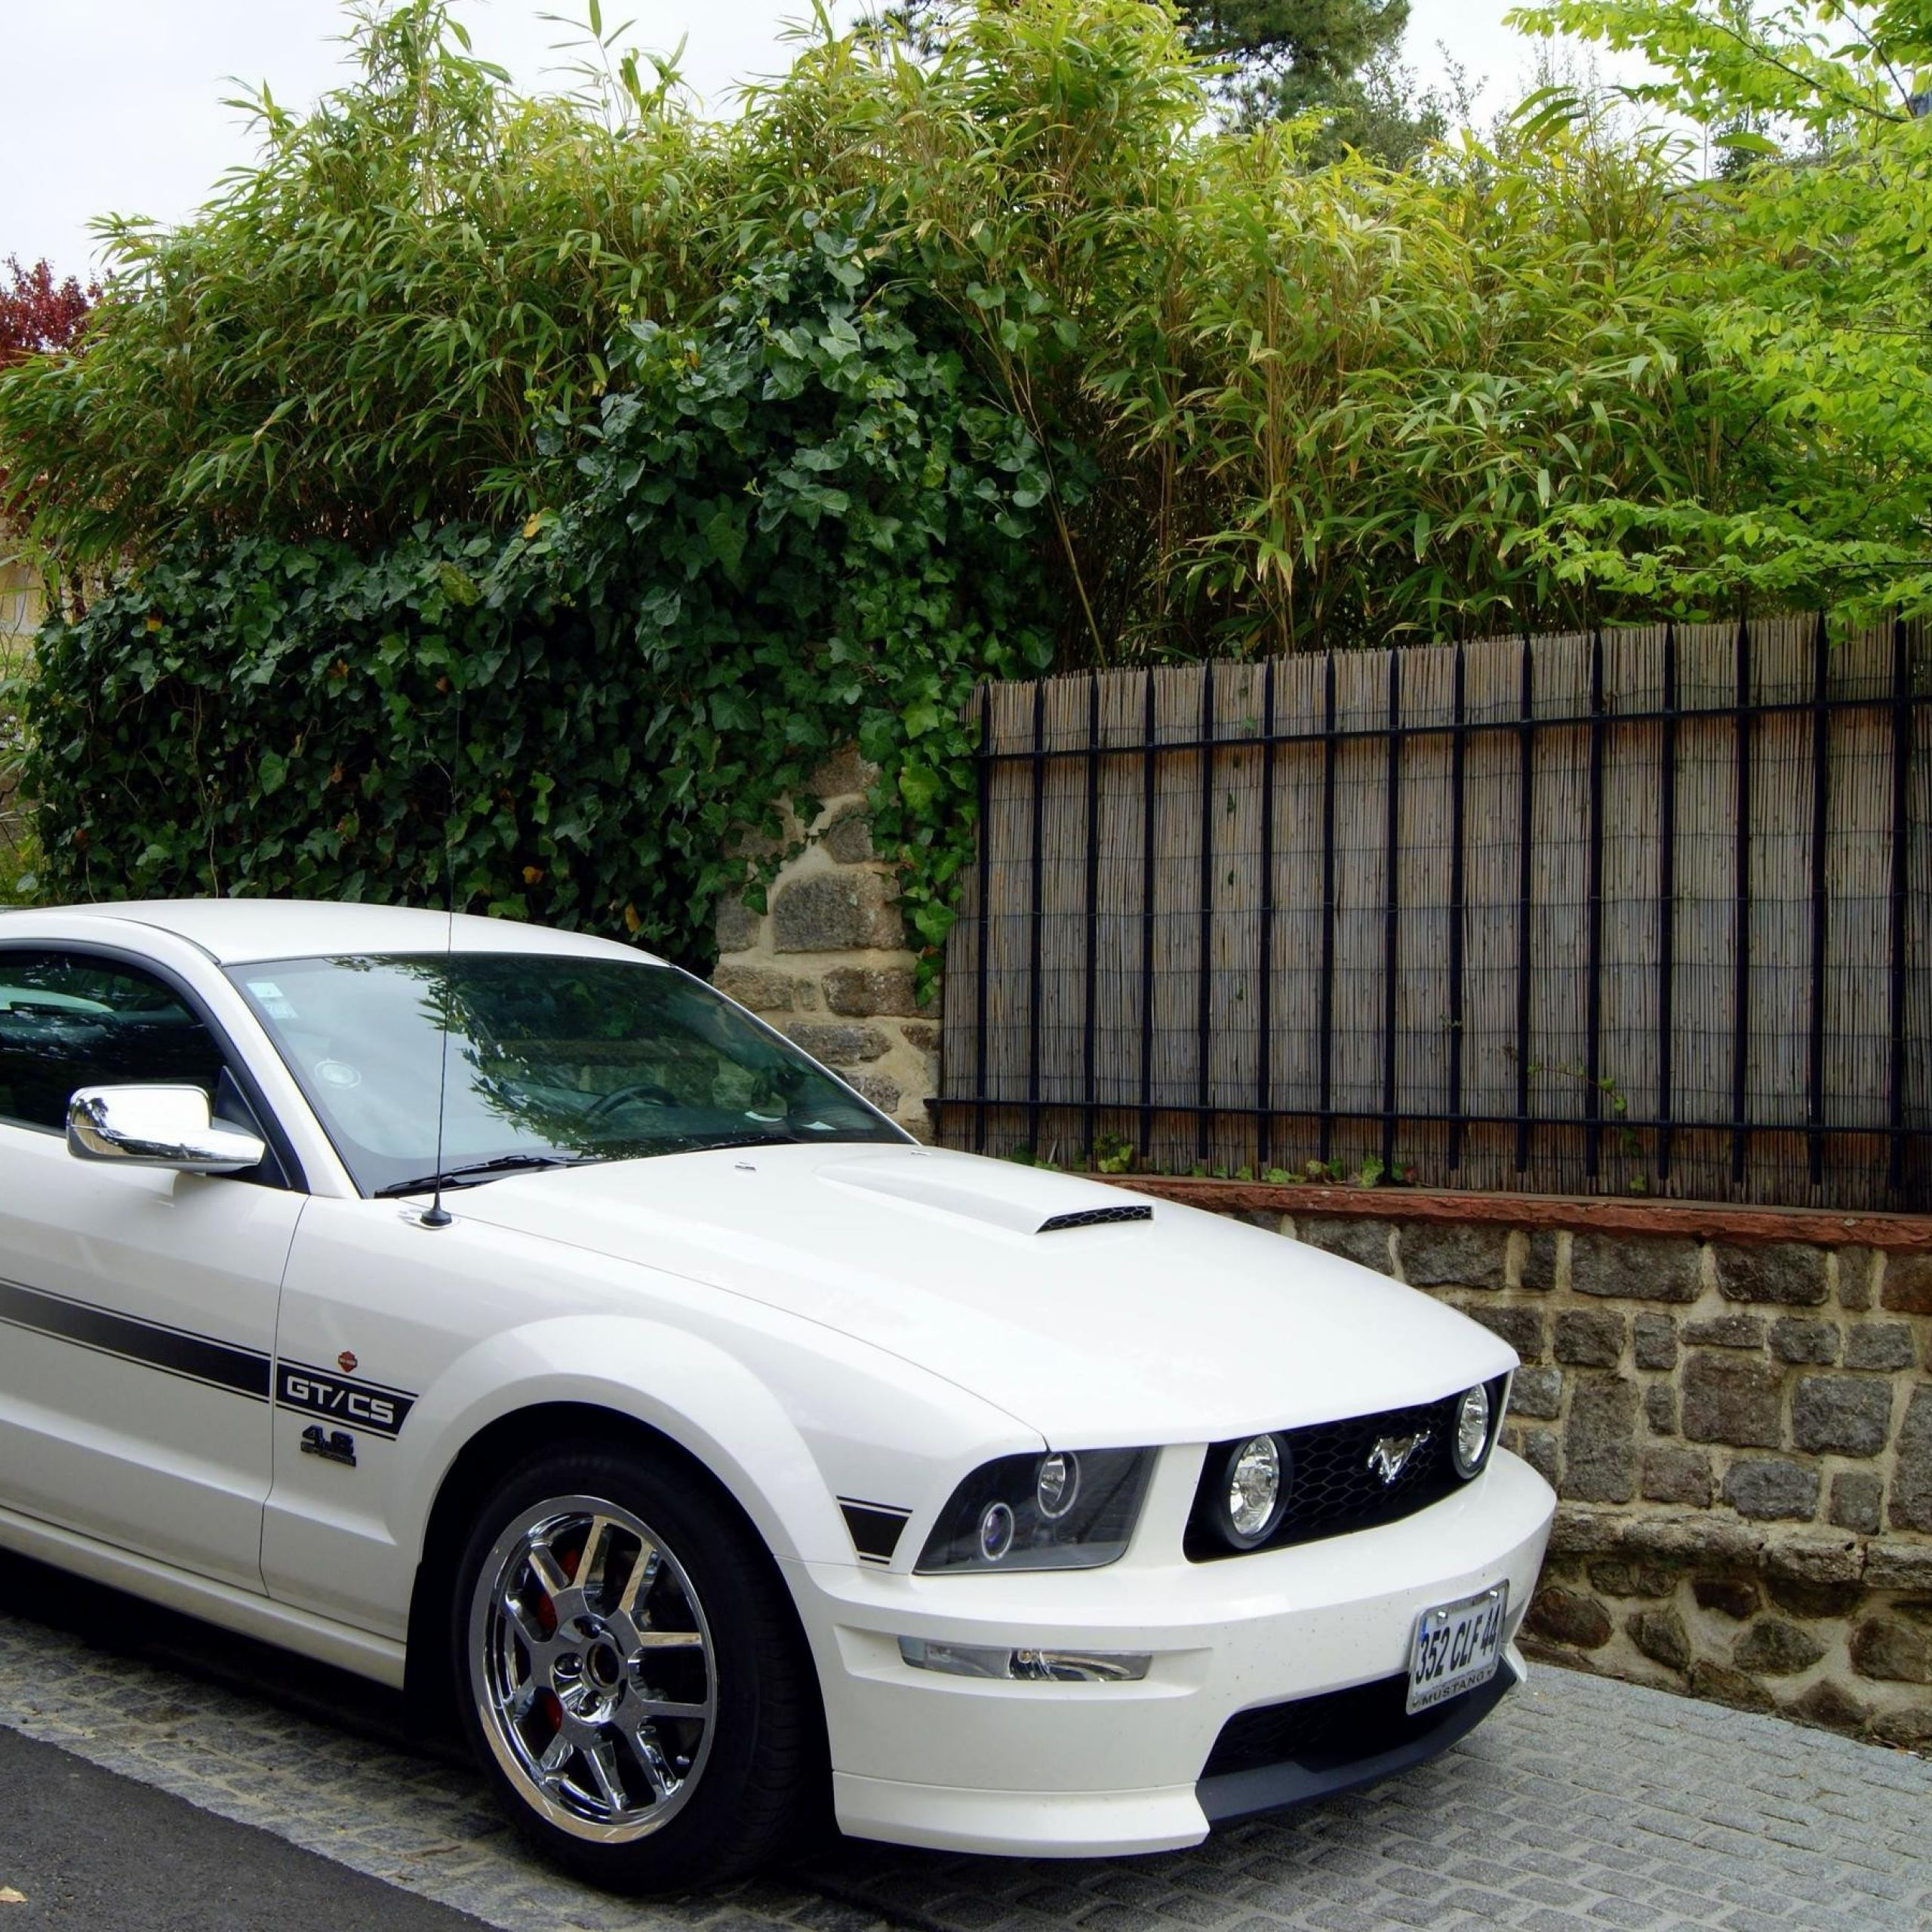 2012 ford Mustang Gt Awesome ford Mustang Gt 4 6 High Performance 9 April 2012 Autogespot